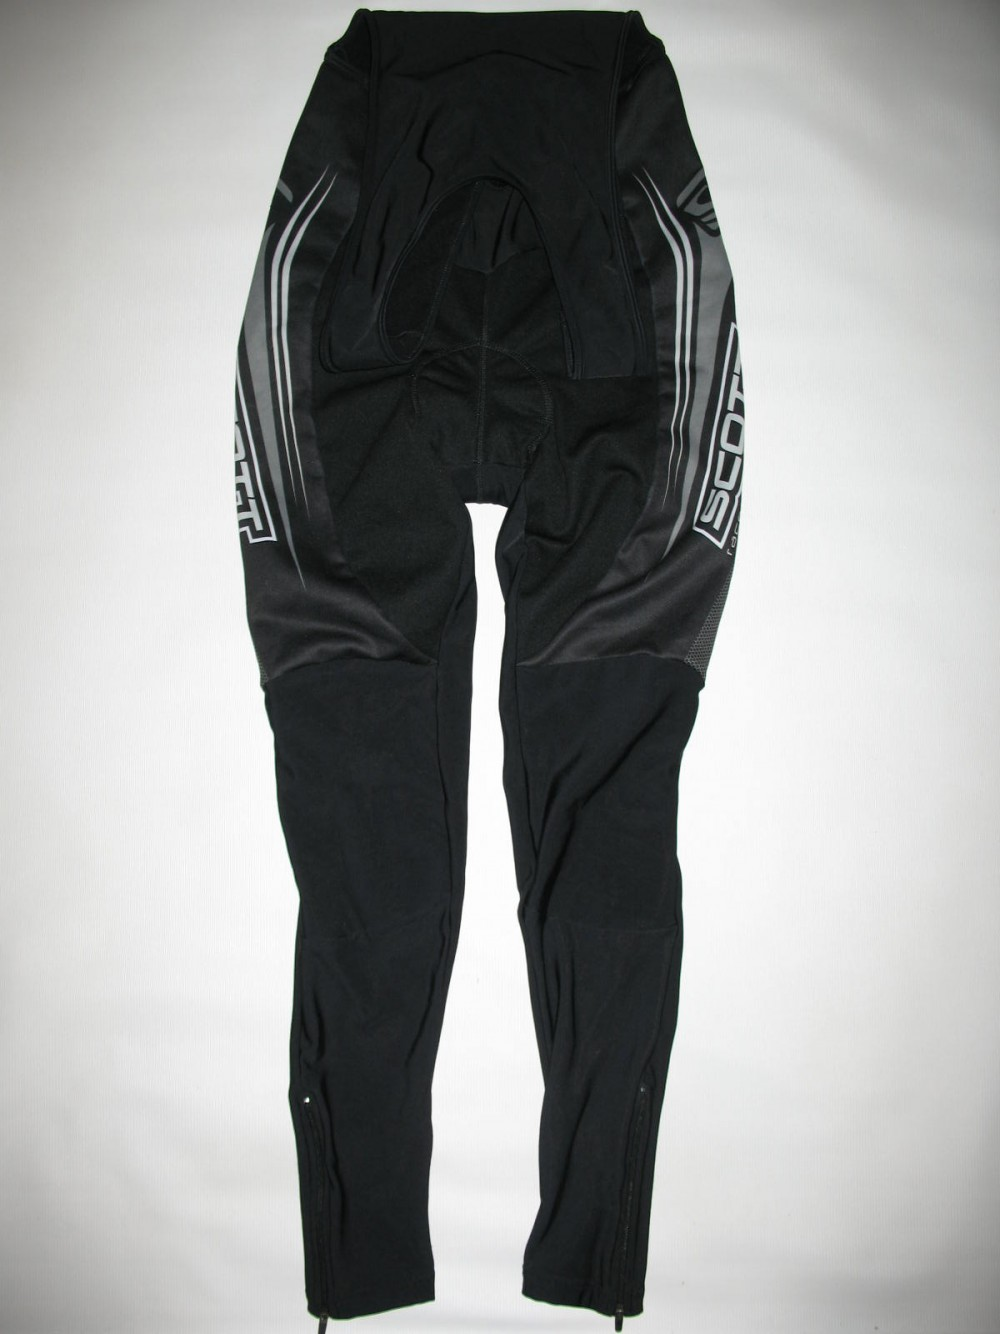 Велобрюки SCOTT cycling bib pants (размер 34/L) - 1